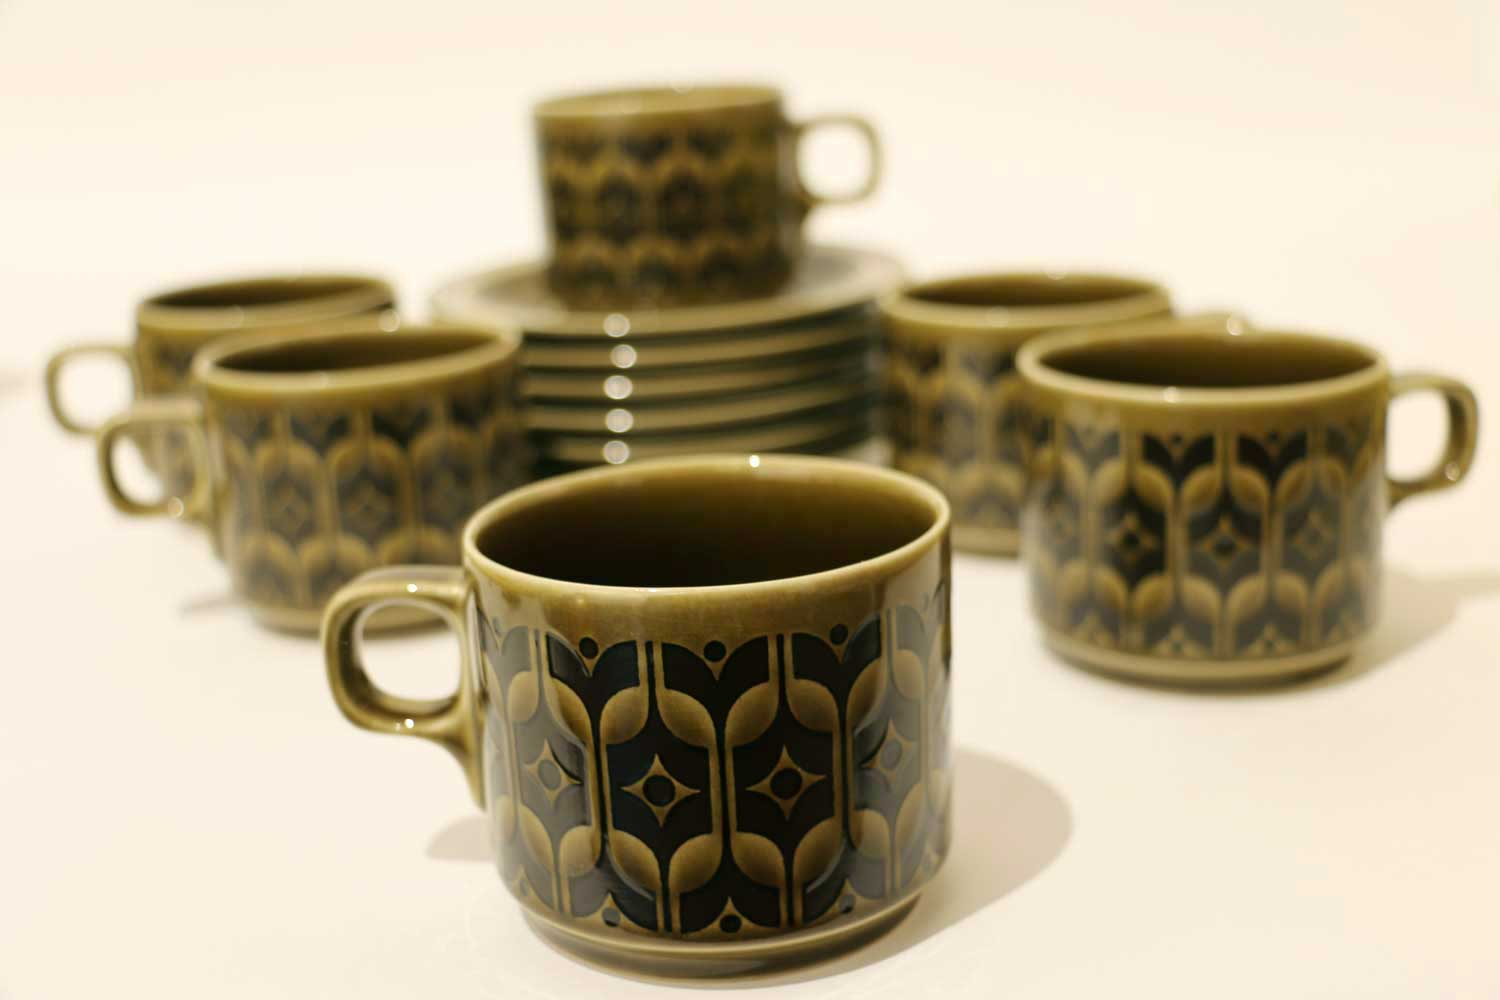 Hornsea set of 6 cups and saucers